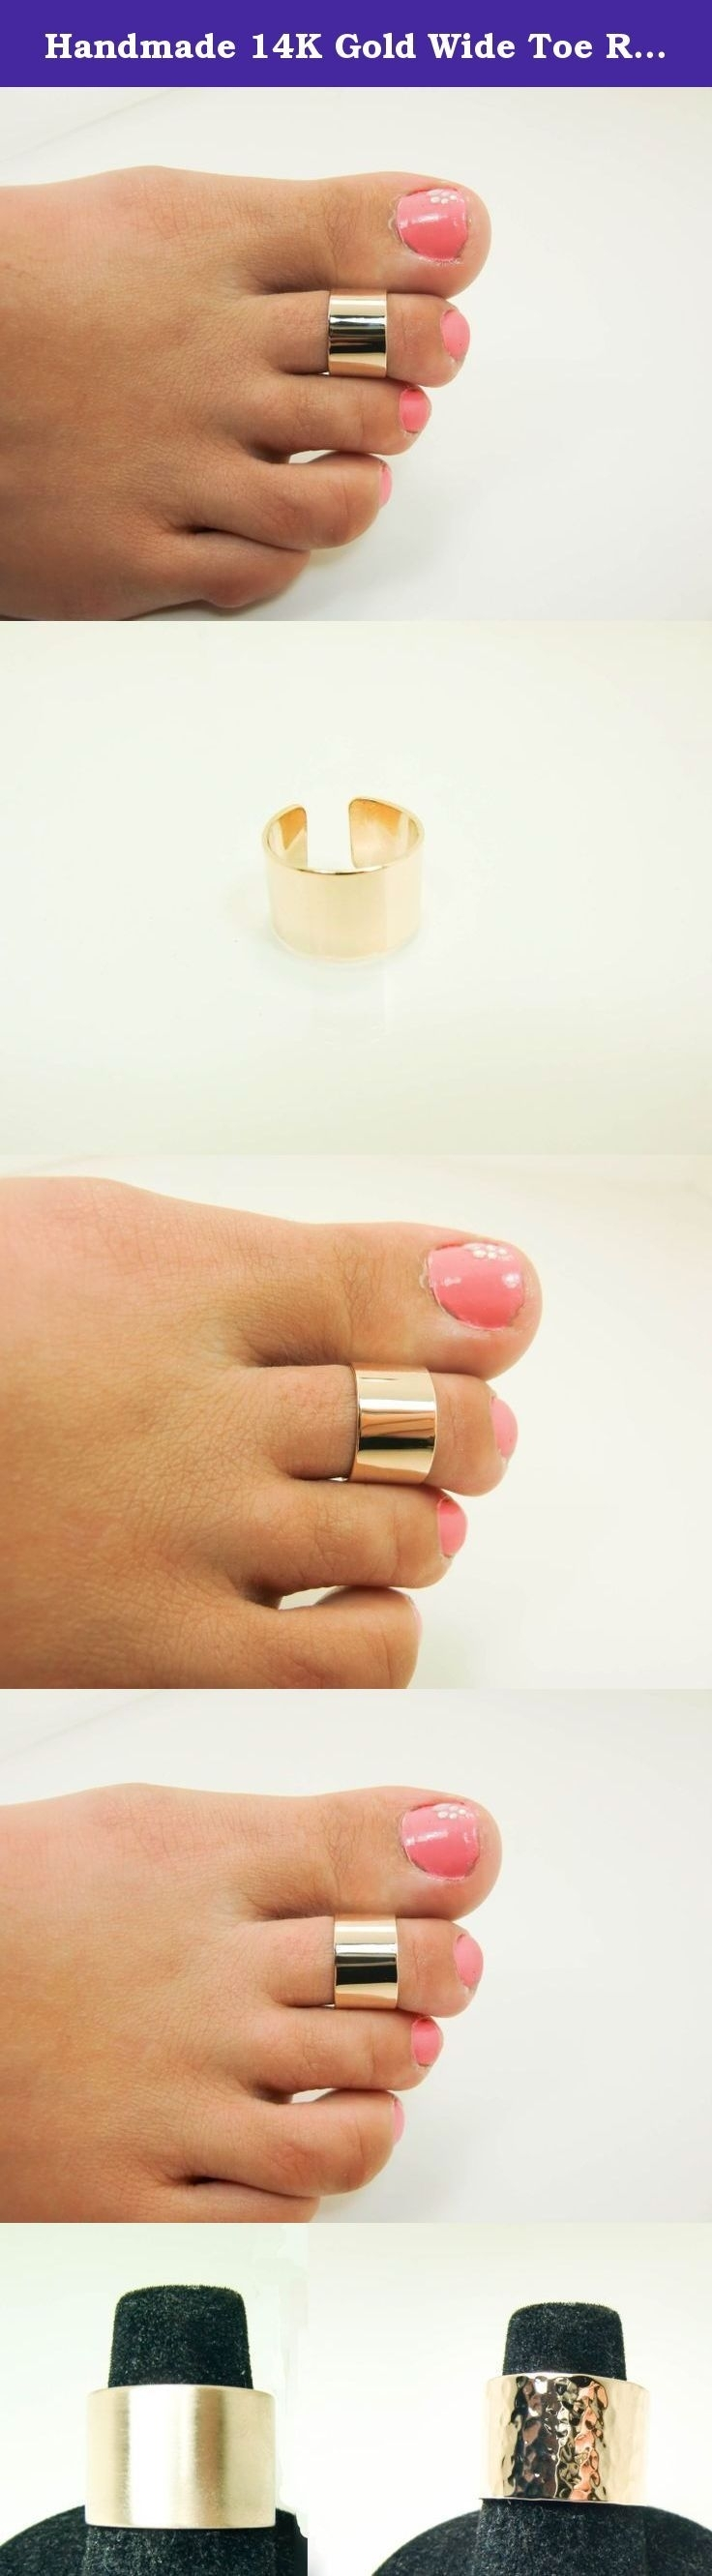 Handmade 14k Gold Wide Toe Ring – Real 14 Karat Yellow Gold Wide In Newest 14k Gold Toe Rings (View 11 of 25)